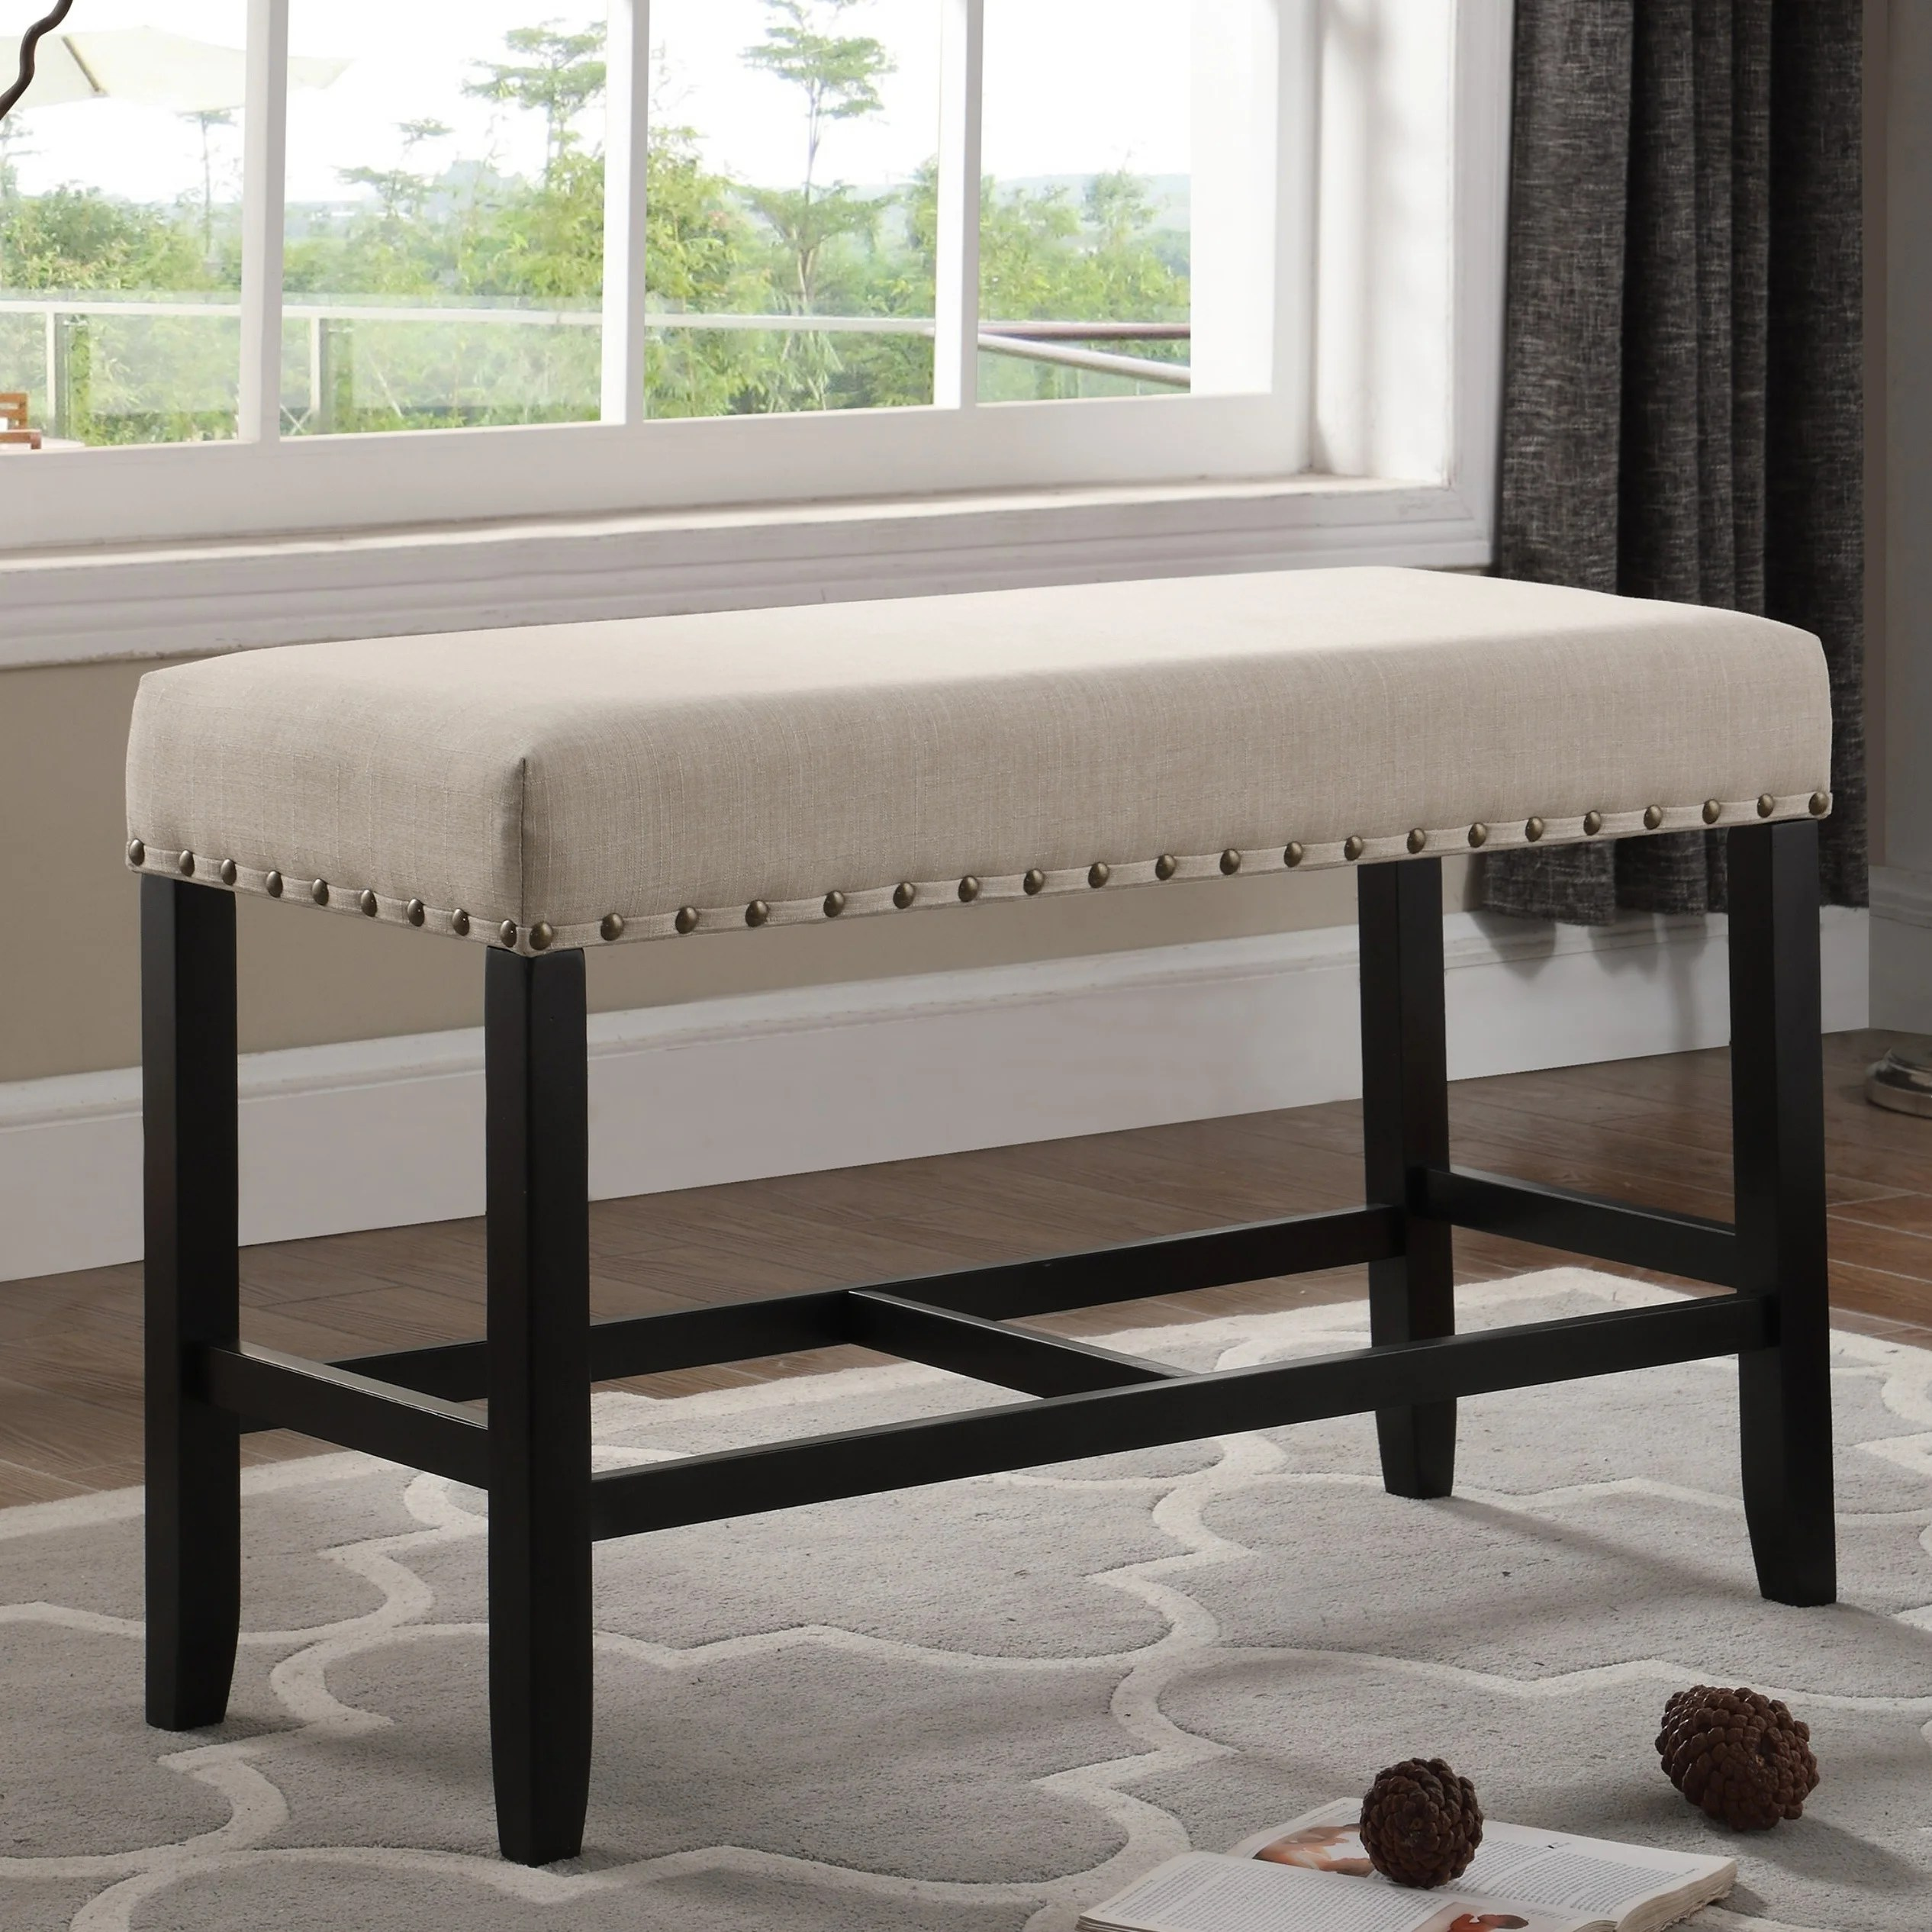 Biony Blue Fabric Counter Height Dining Bench With Nailhead Trim Overstock 19807923 Grey